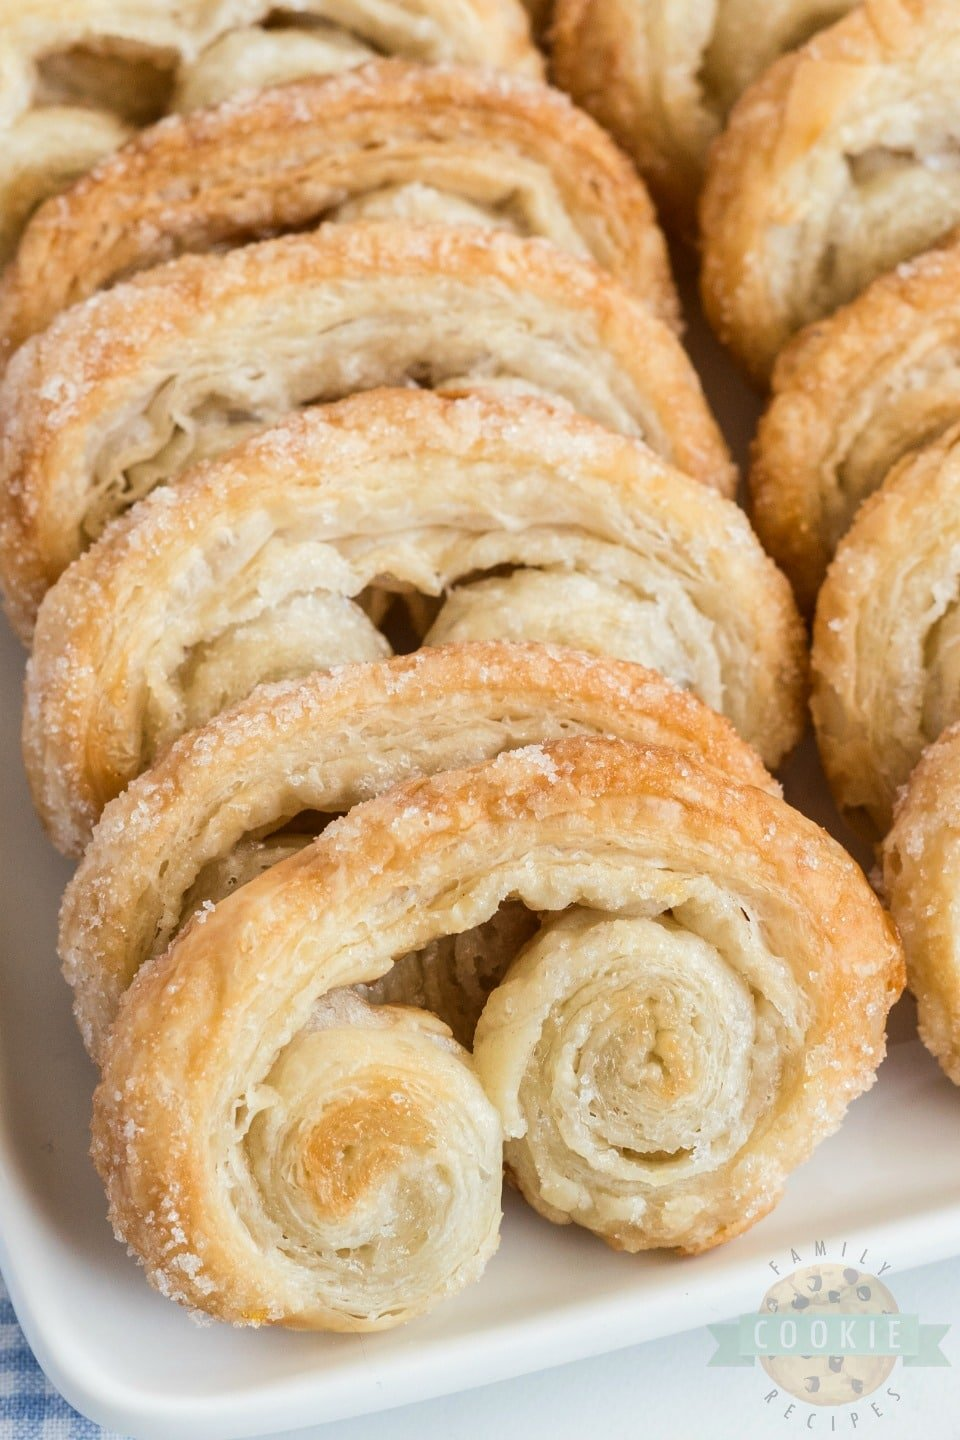 1632465912_871_EASY-PALMIERS-RECIPE